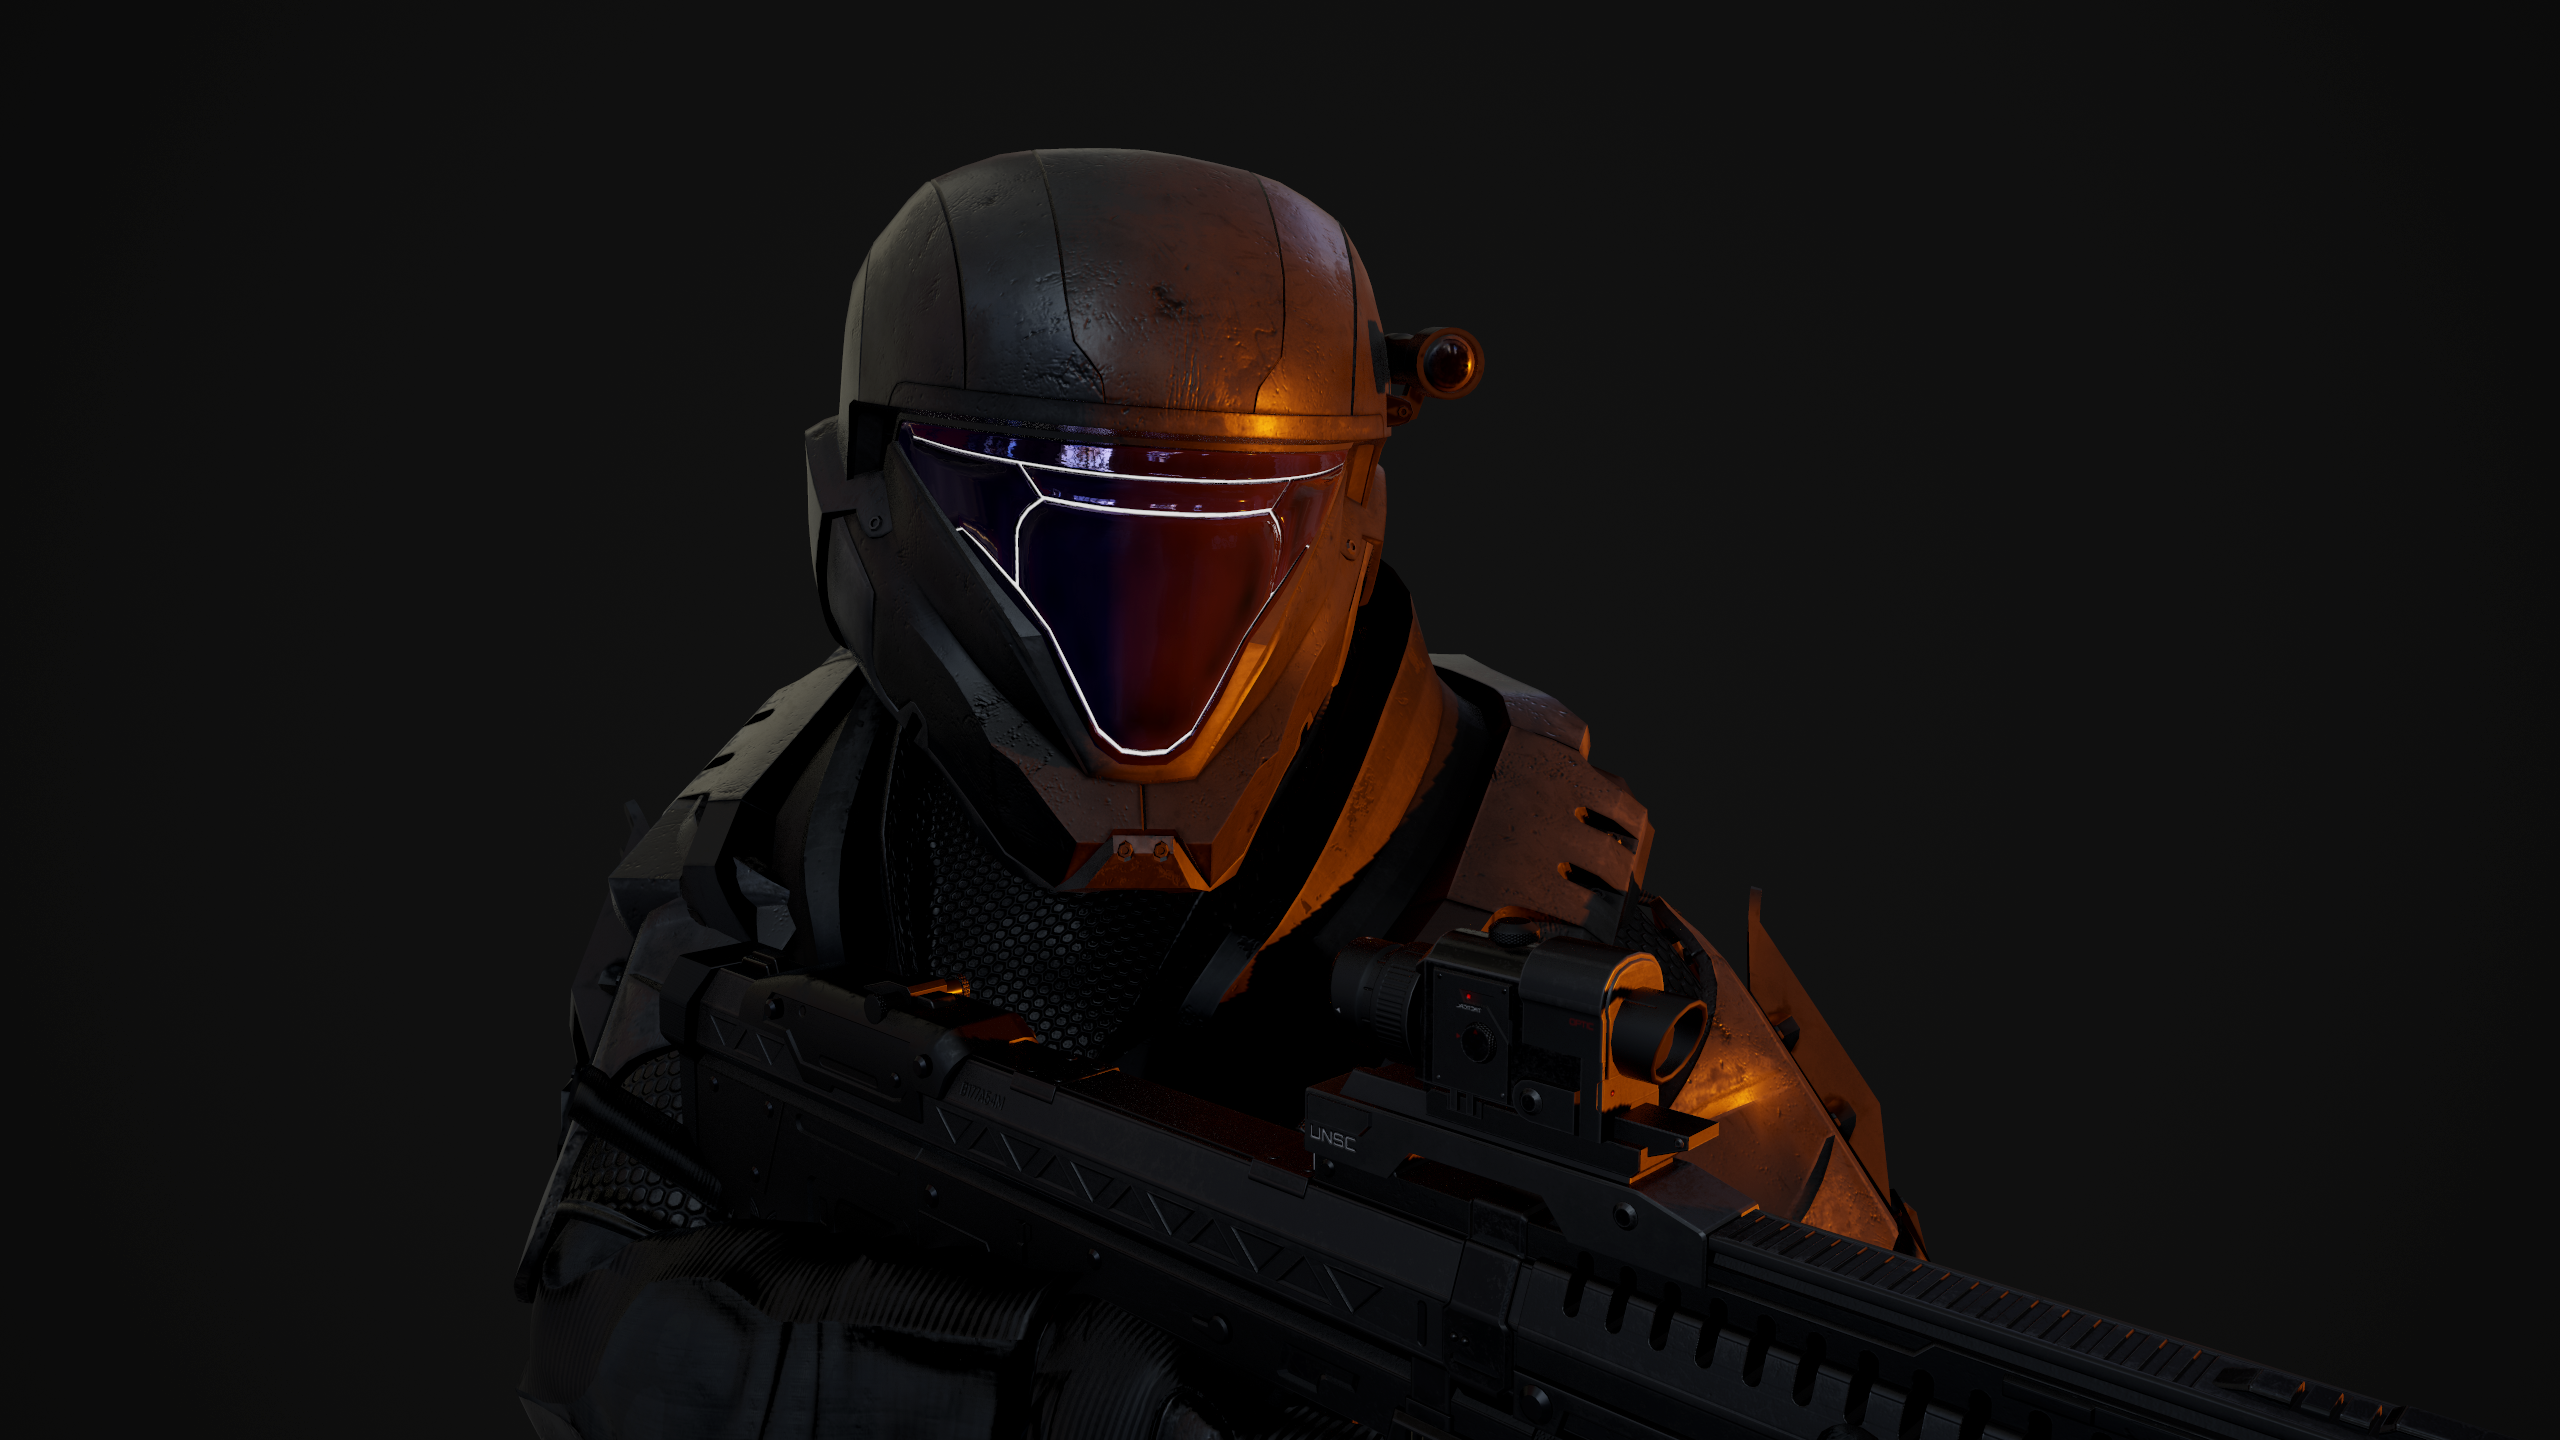 ODST WIP 2 at Fallout 4 Nexus - Mods and community